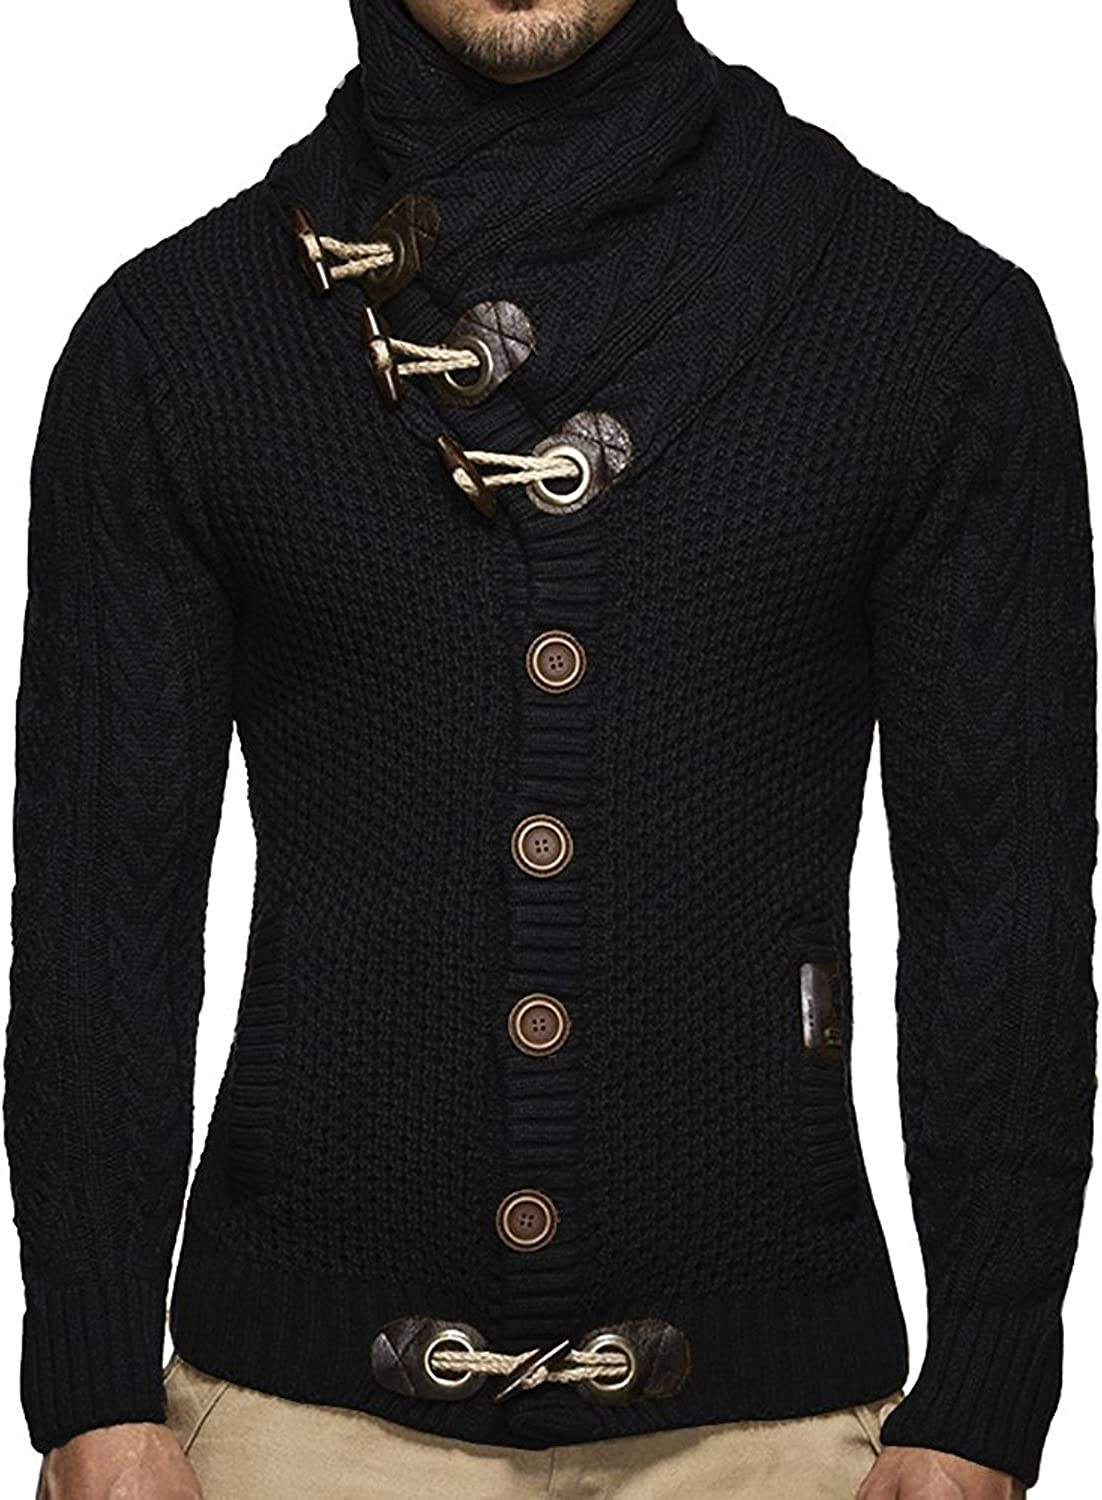 Bbalizko Mens Sweaters Turtleneck Cable Knit Winter Chunky Cardigan Sweater Jacket